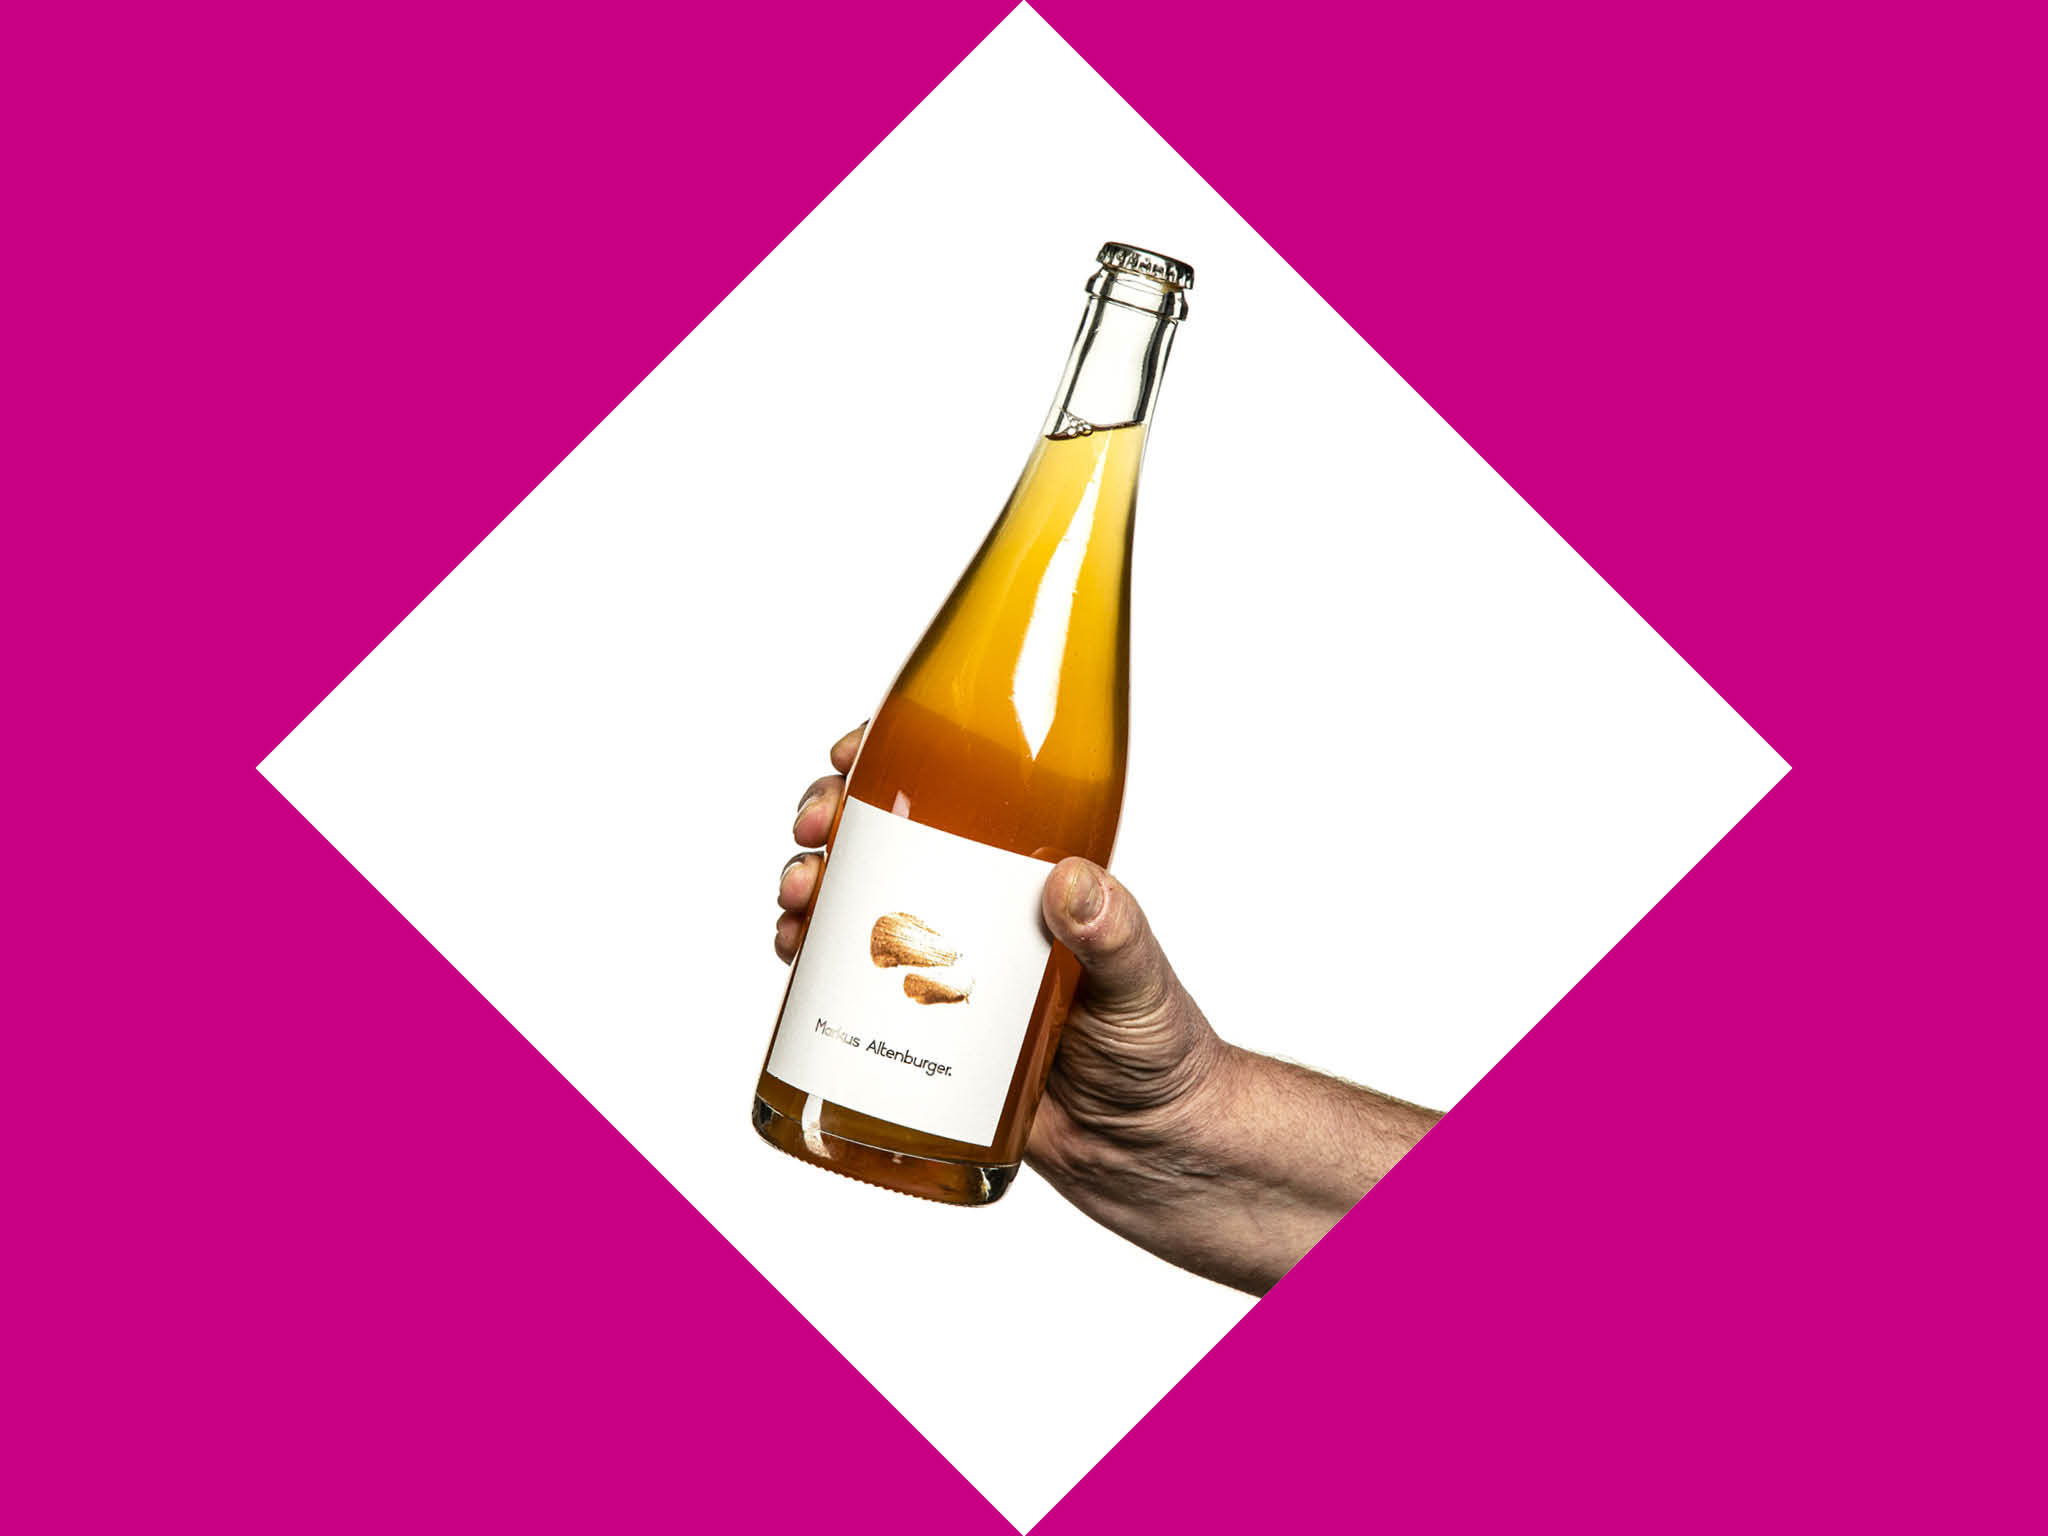 natural wine, skins and stones